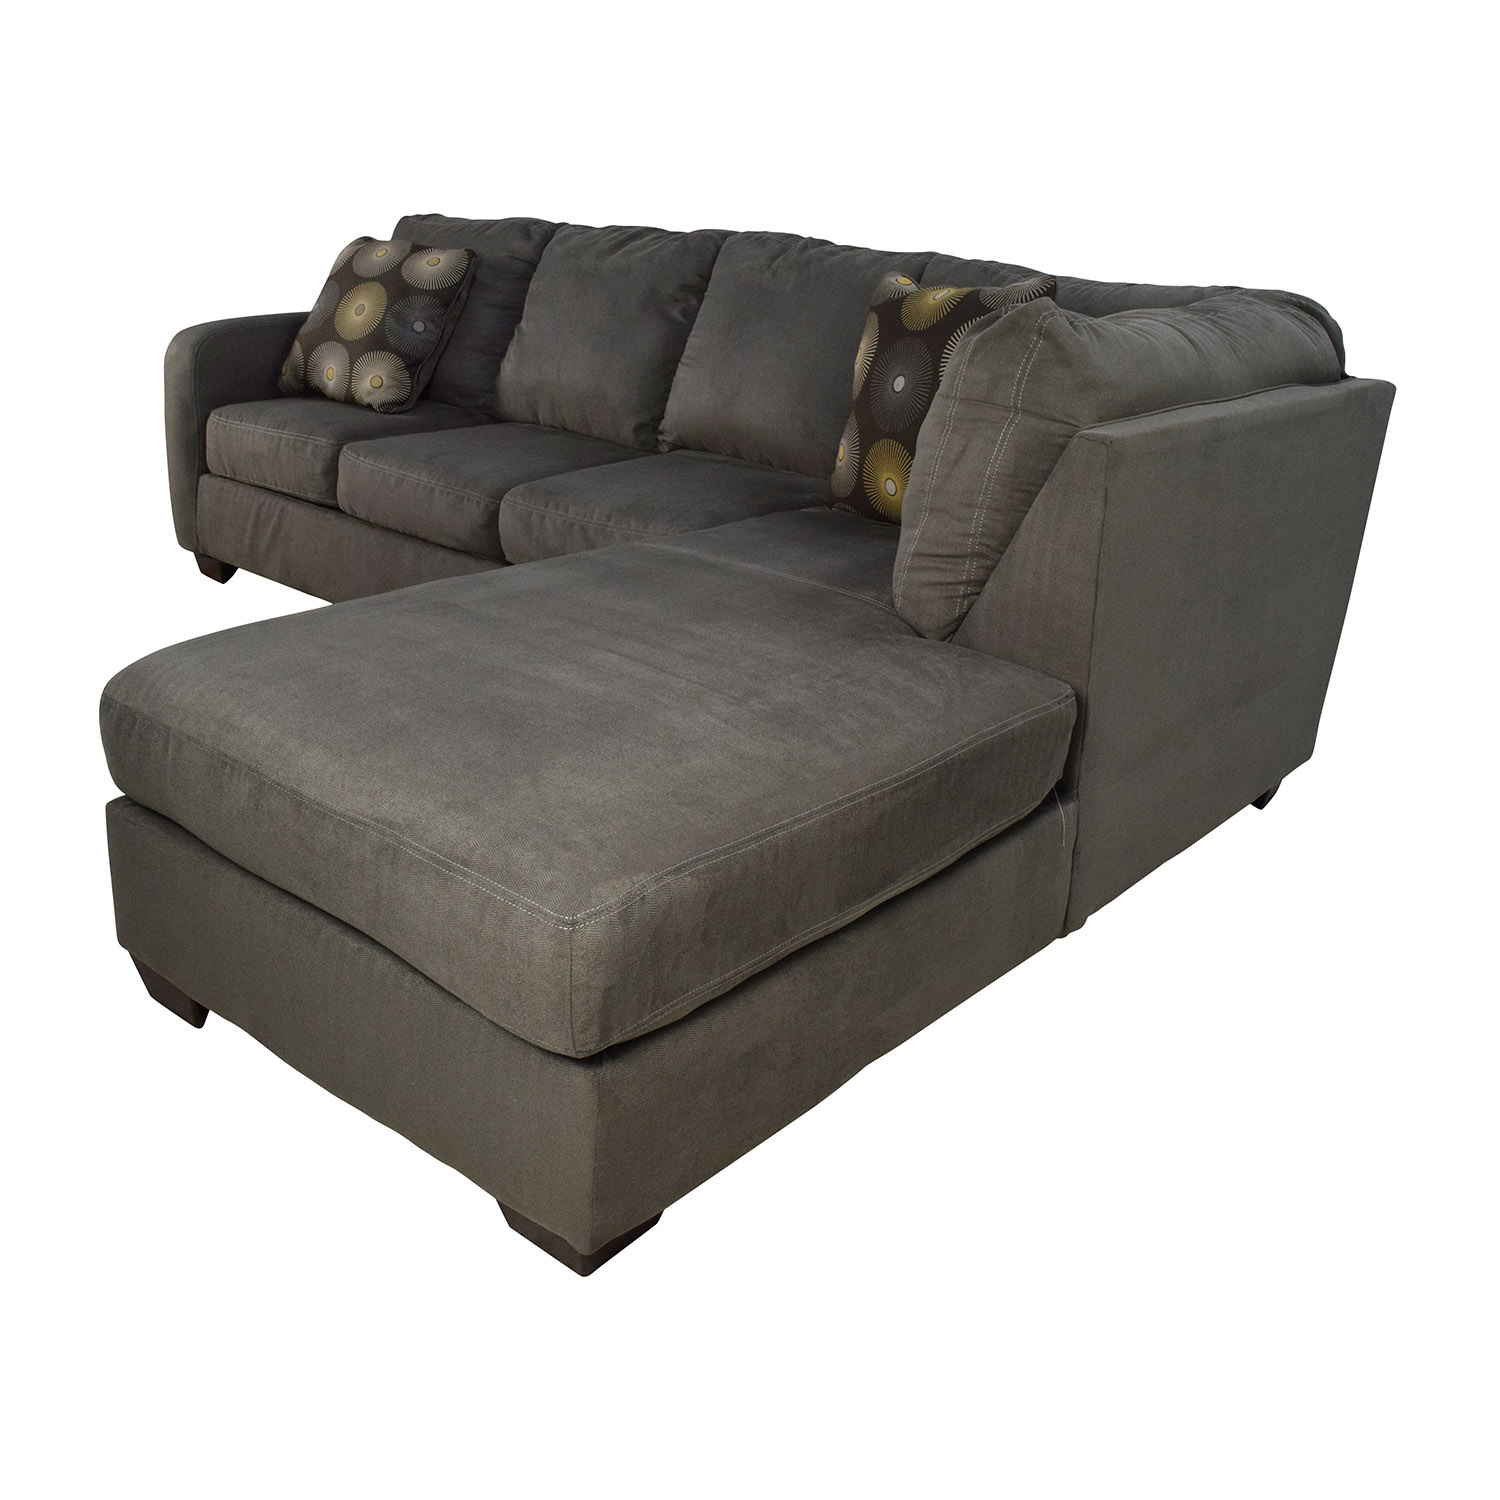 30 off ashley furniture ashley furniture waverly gray for Sectional sofas mor furniture